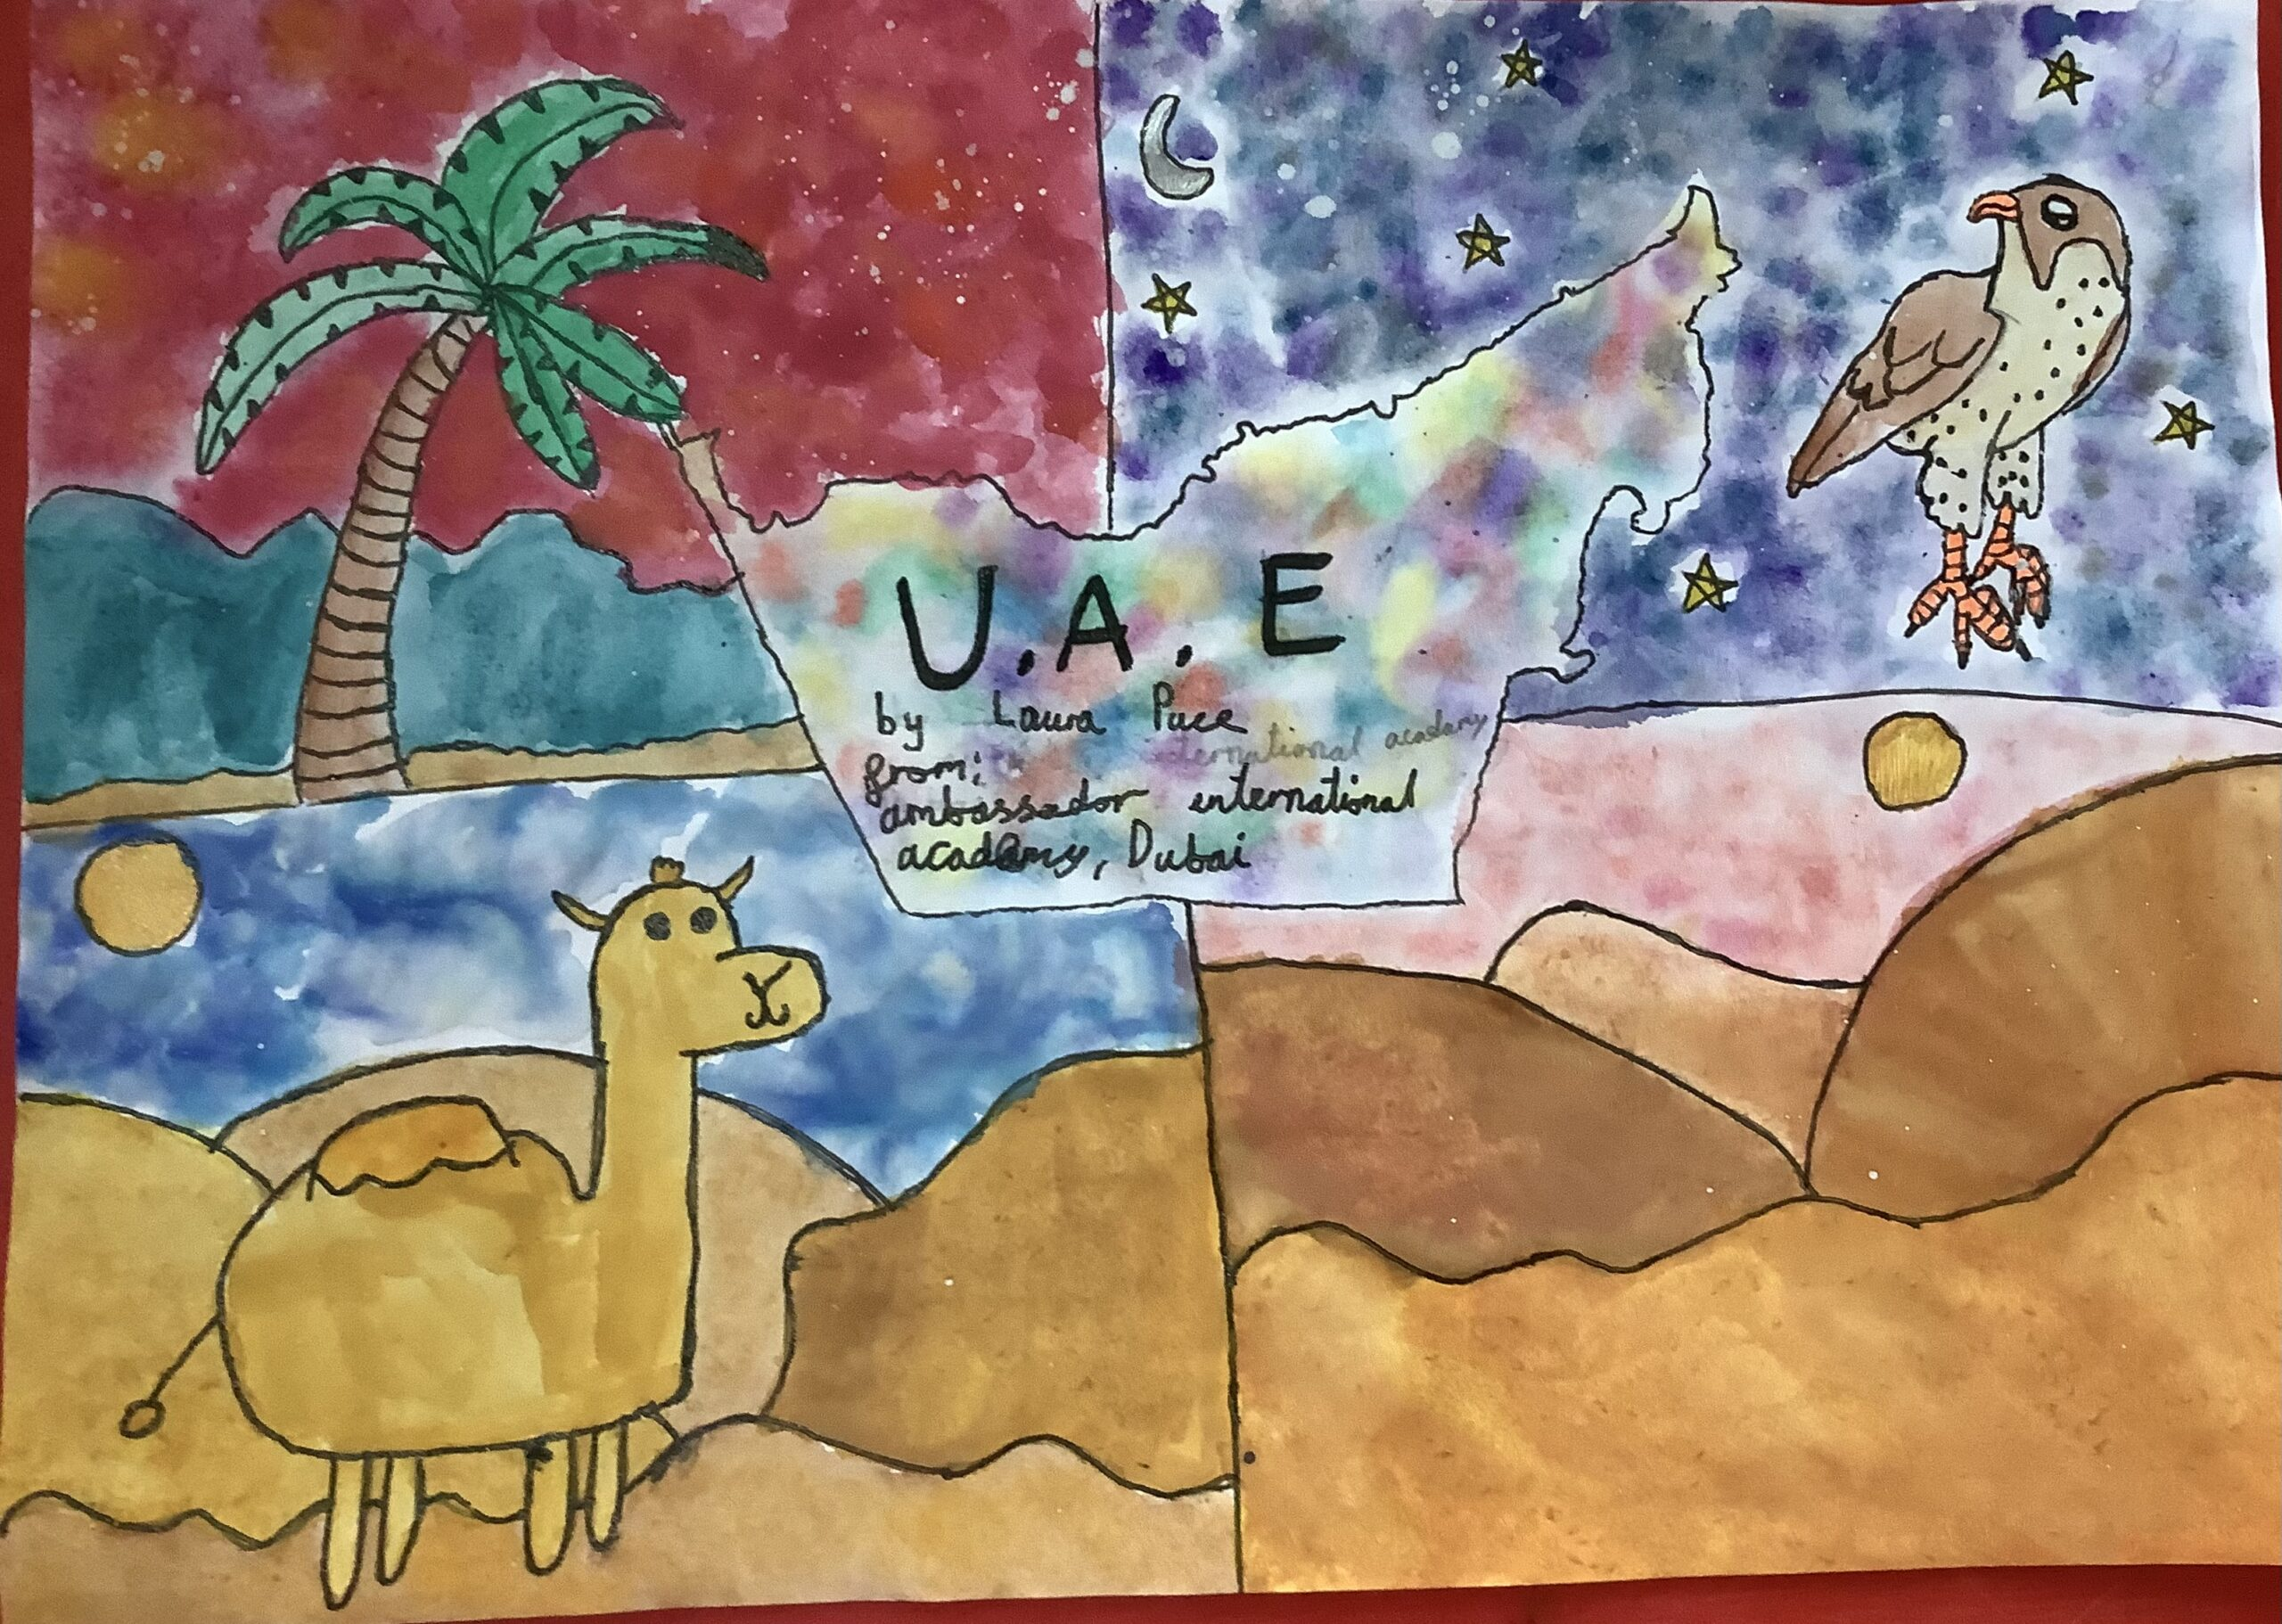 Nature in the U.A.E by Laura Puce